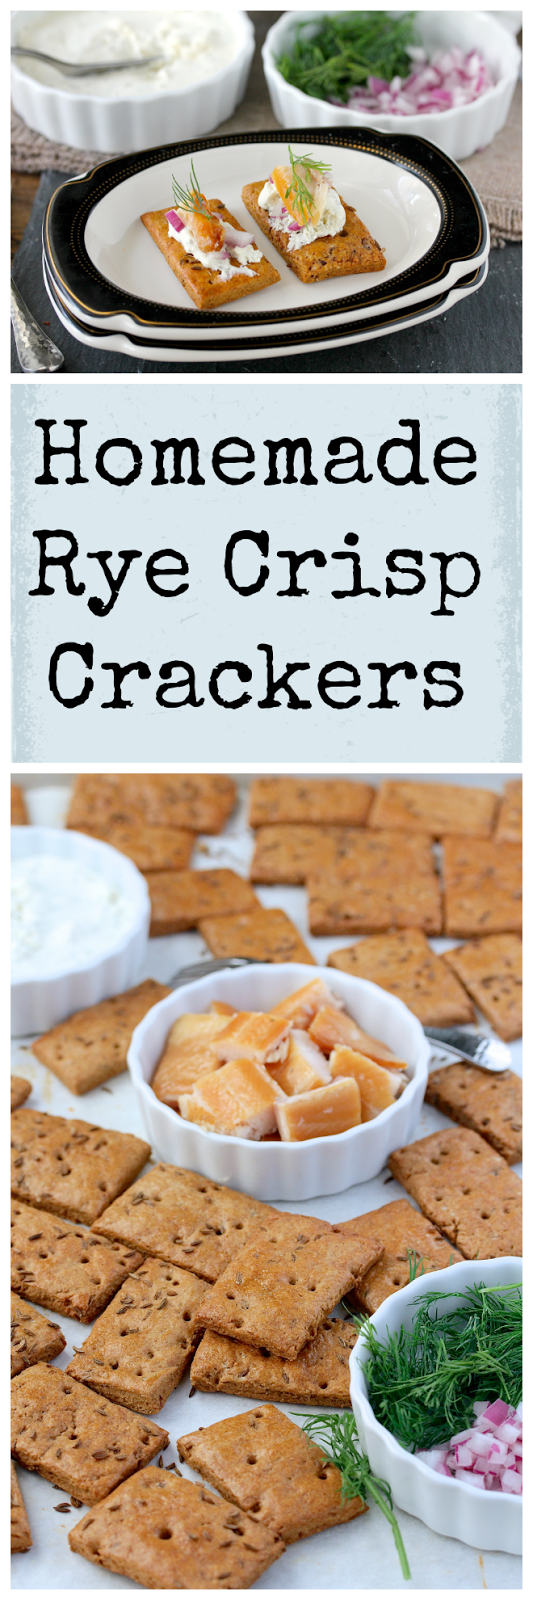 These homemade rye crisp crackers are intensely flavored with the rye and caraway flavors of a traditional rye bread or cracker.